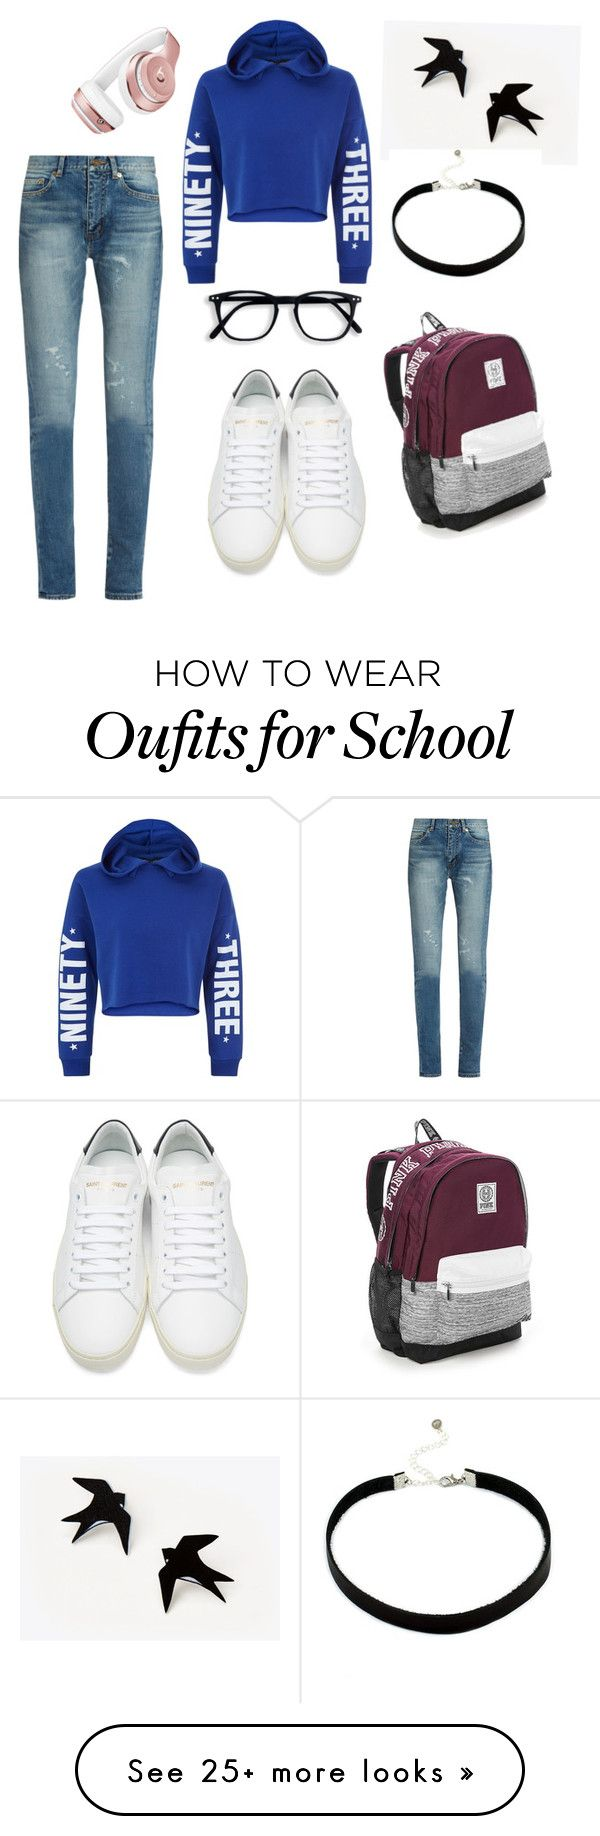 """School look"" by hahsks on Polyvore featuring Yves Saint Laurent, New Look, Victoria's Secret and Beats by Dr. Dre"